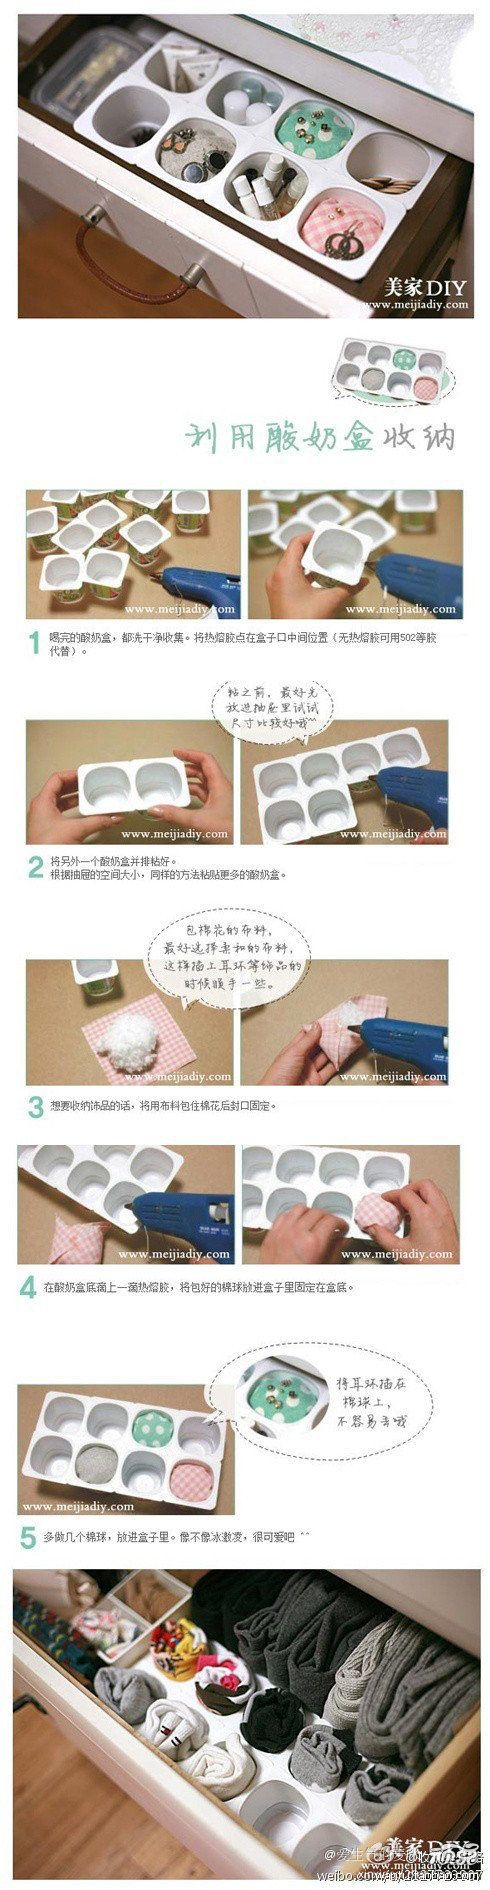 DIY Yogurt Cup Organizer DIY Yogurt Cup Organizer- can't understand the instructions to this one, but I like it!